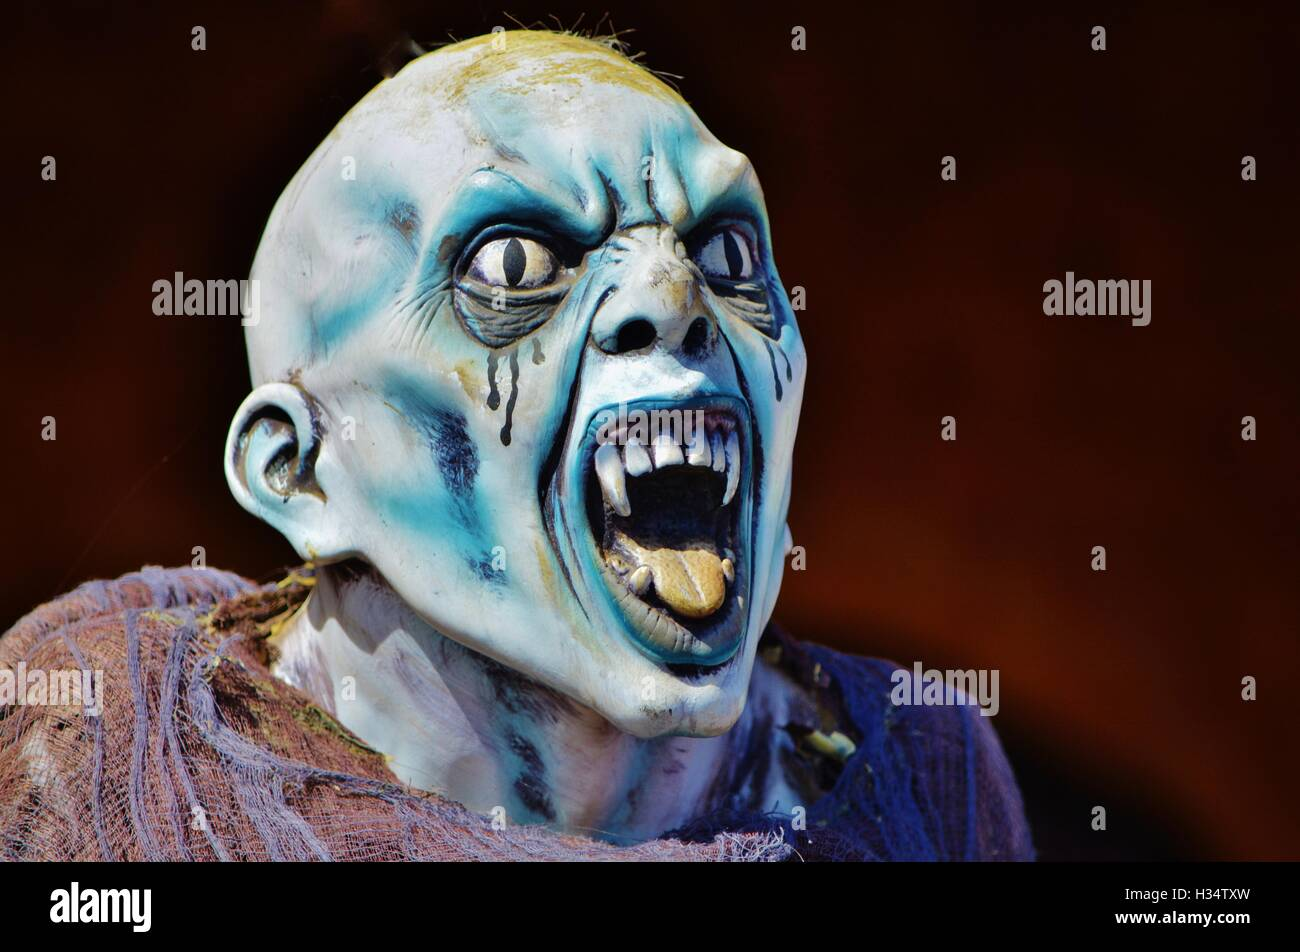 The scary frightening Blue Demon, daemon is here - Stock Image